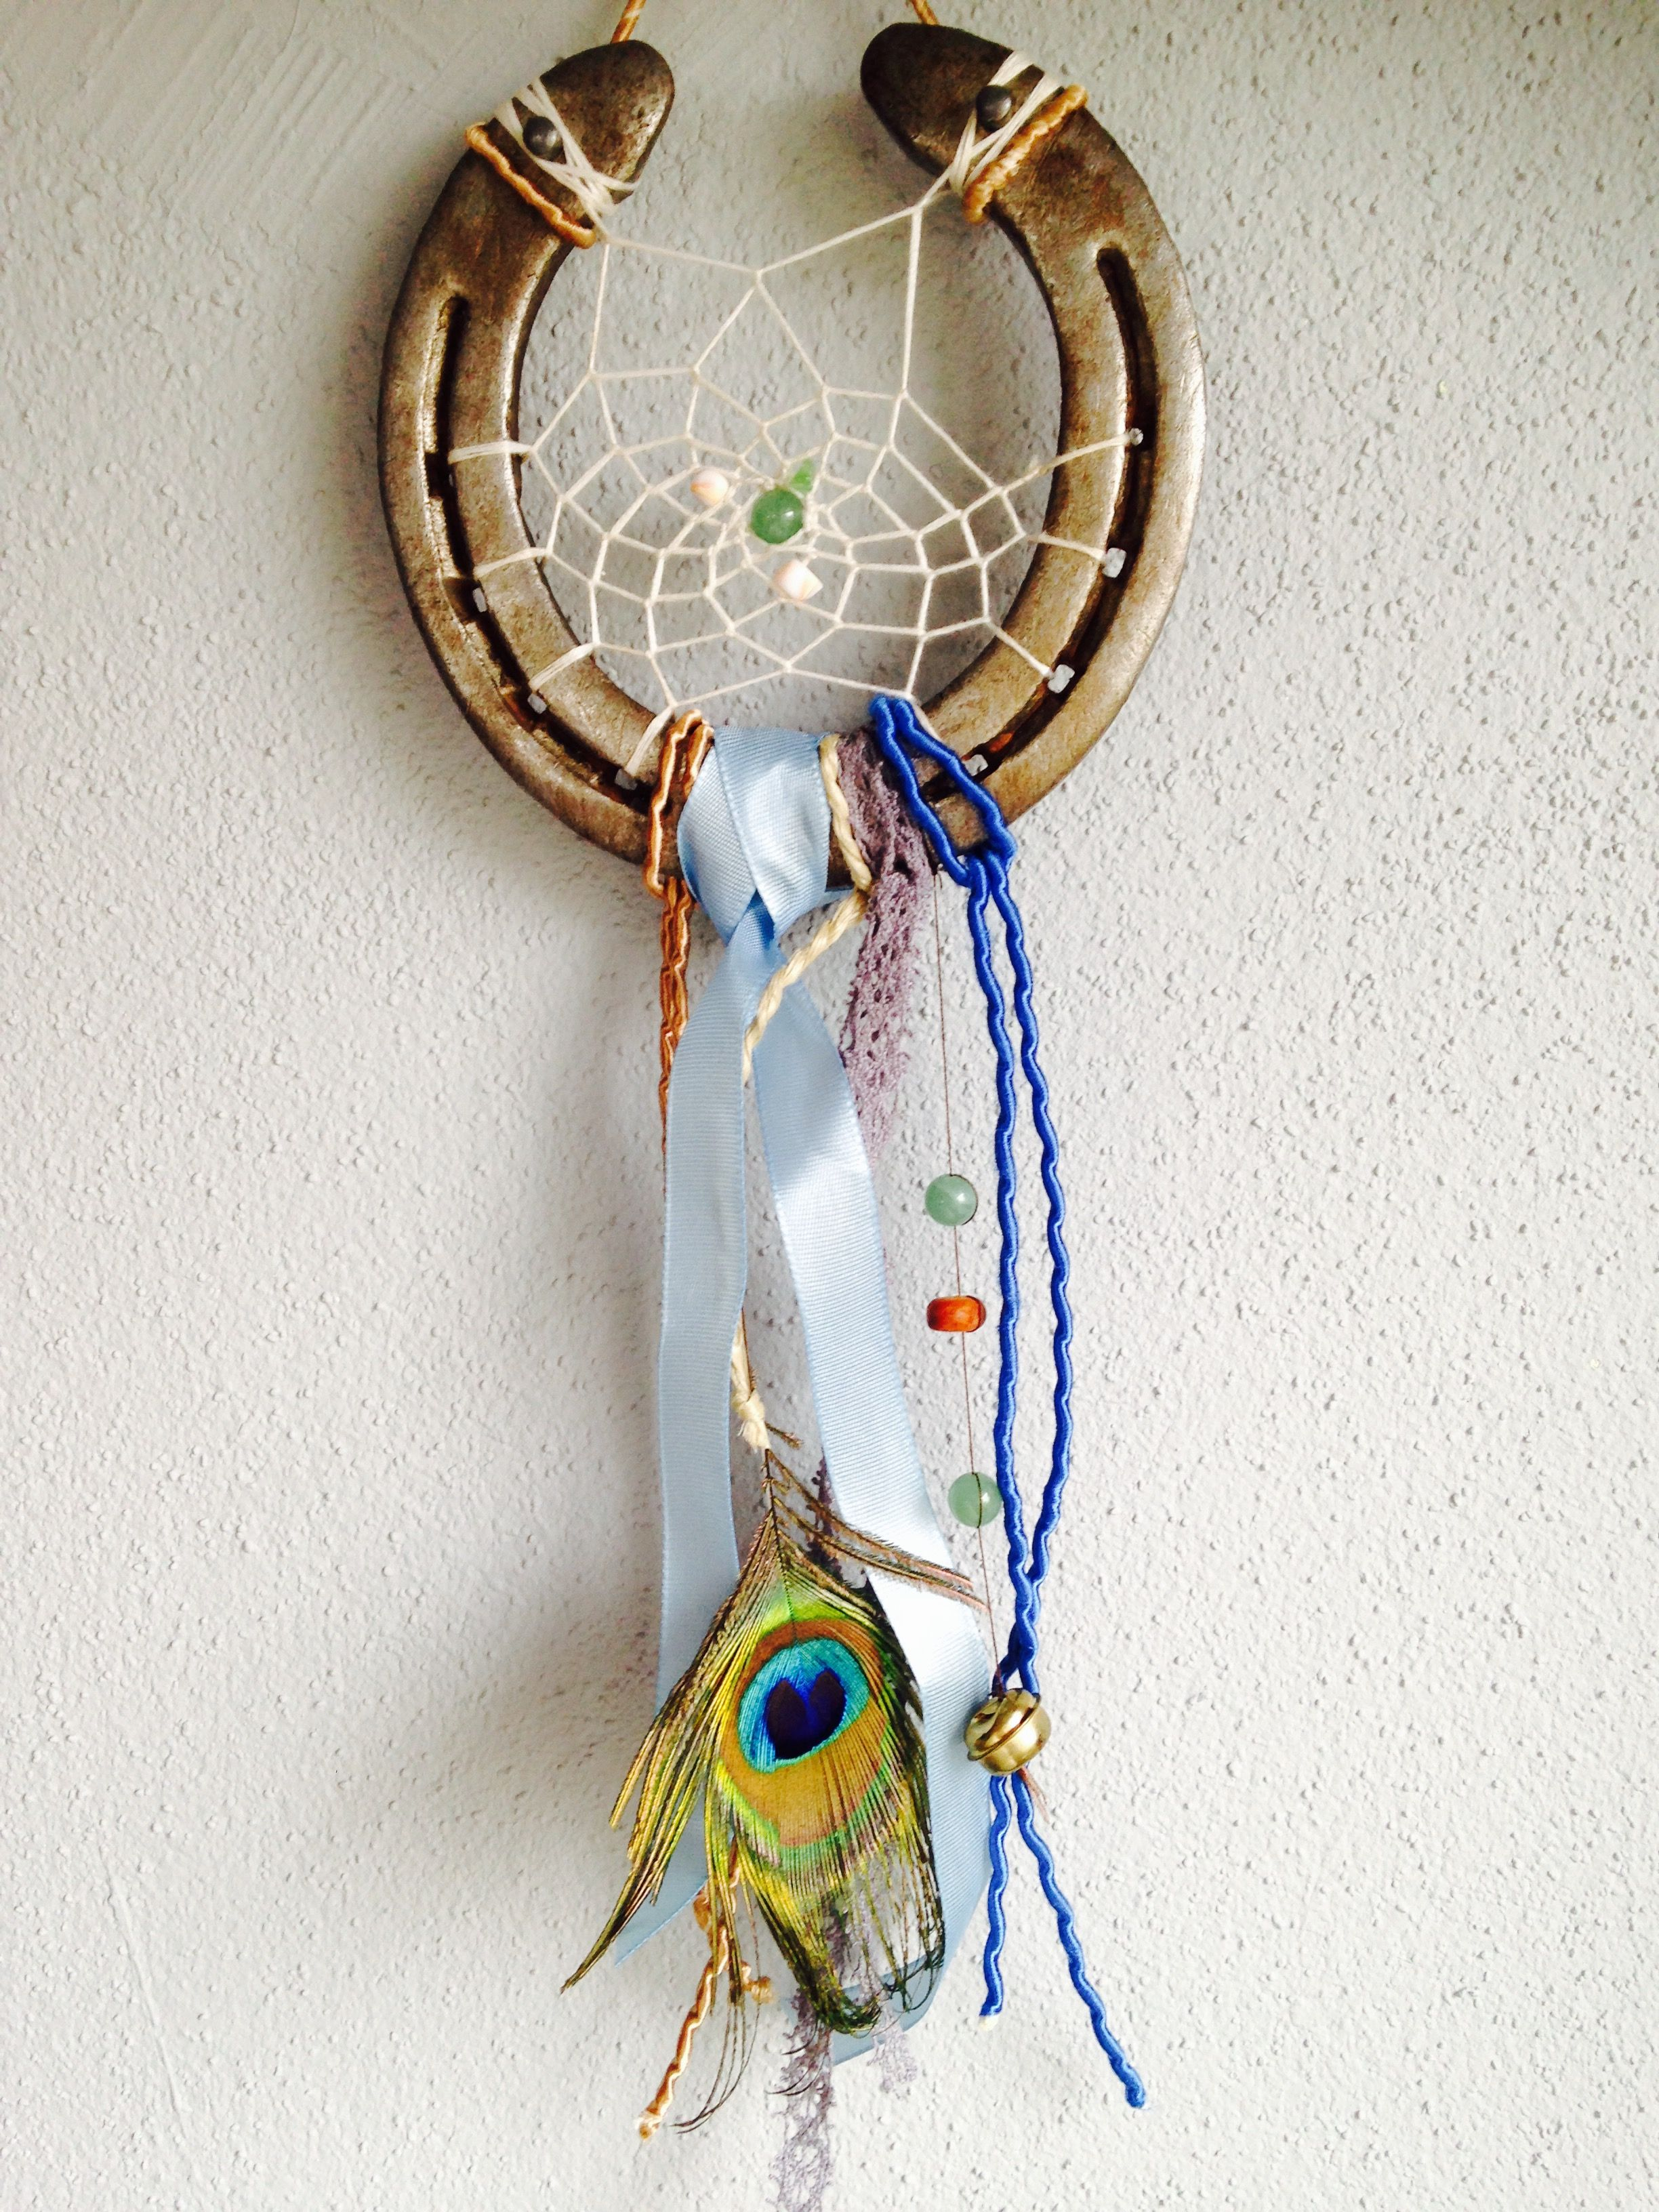 35 Stivoll Bilderrahmen Kinderzimmer Sanpas Home Decor Hufeisen Traumfänger Basteln Dream Catcher Und Home Decor